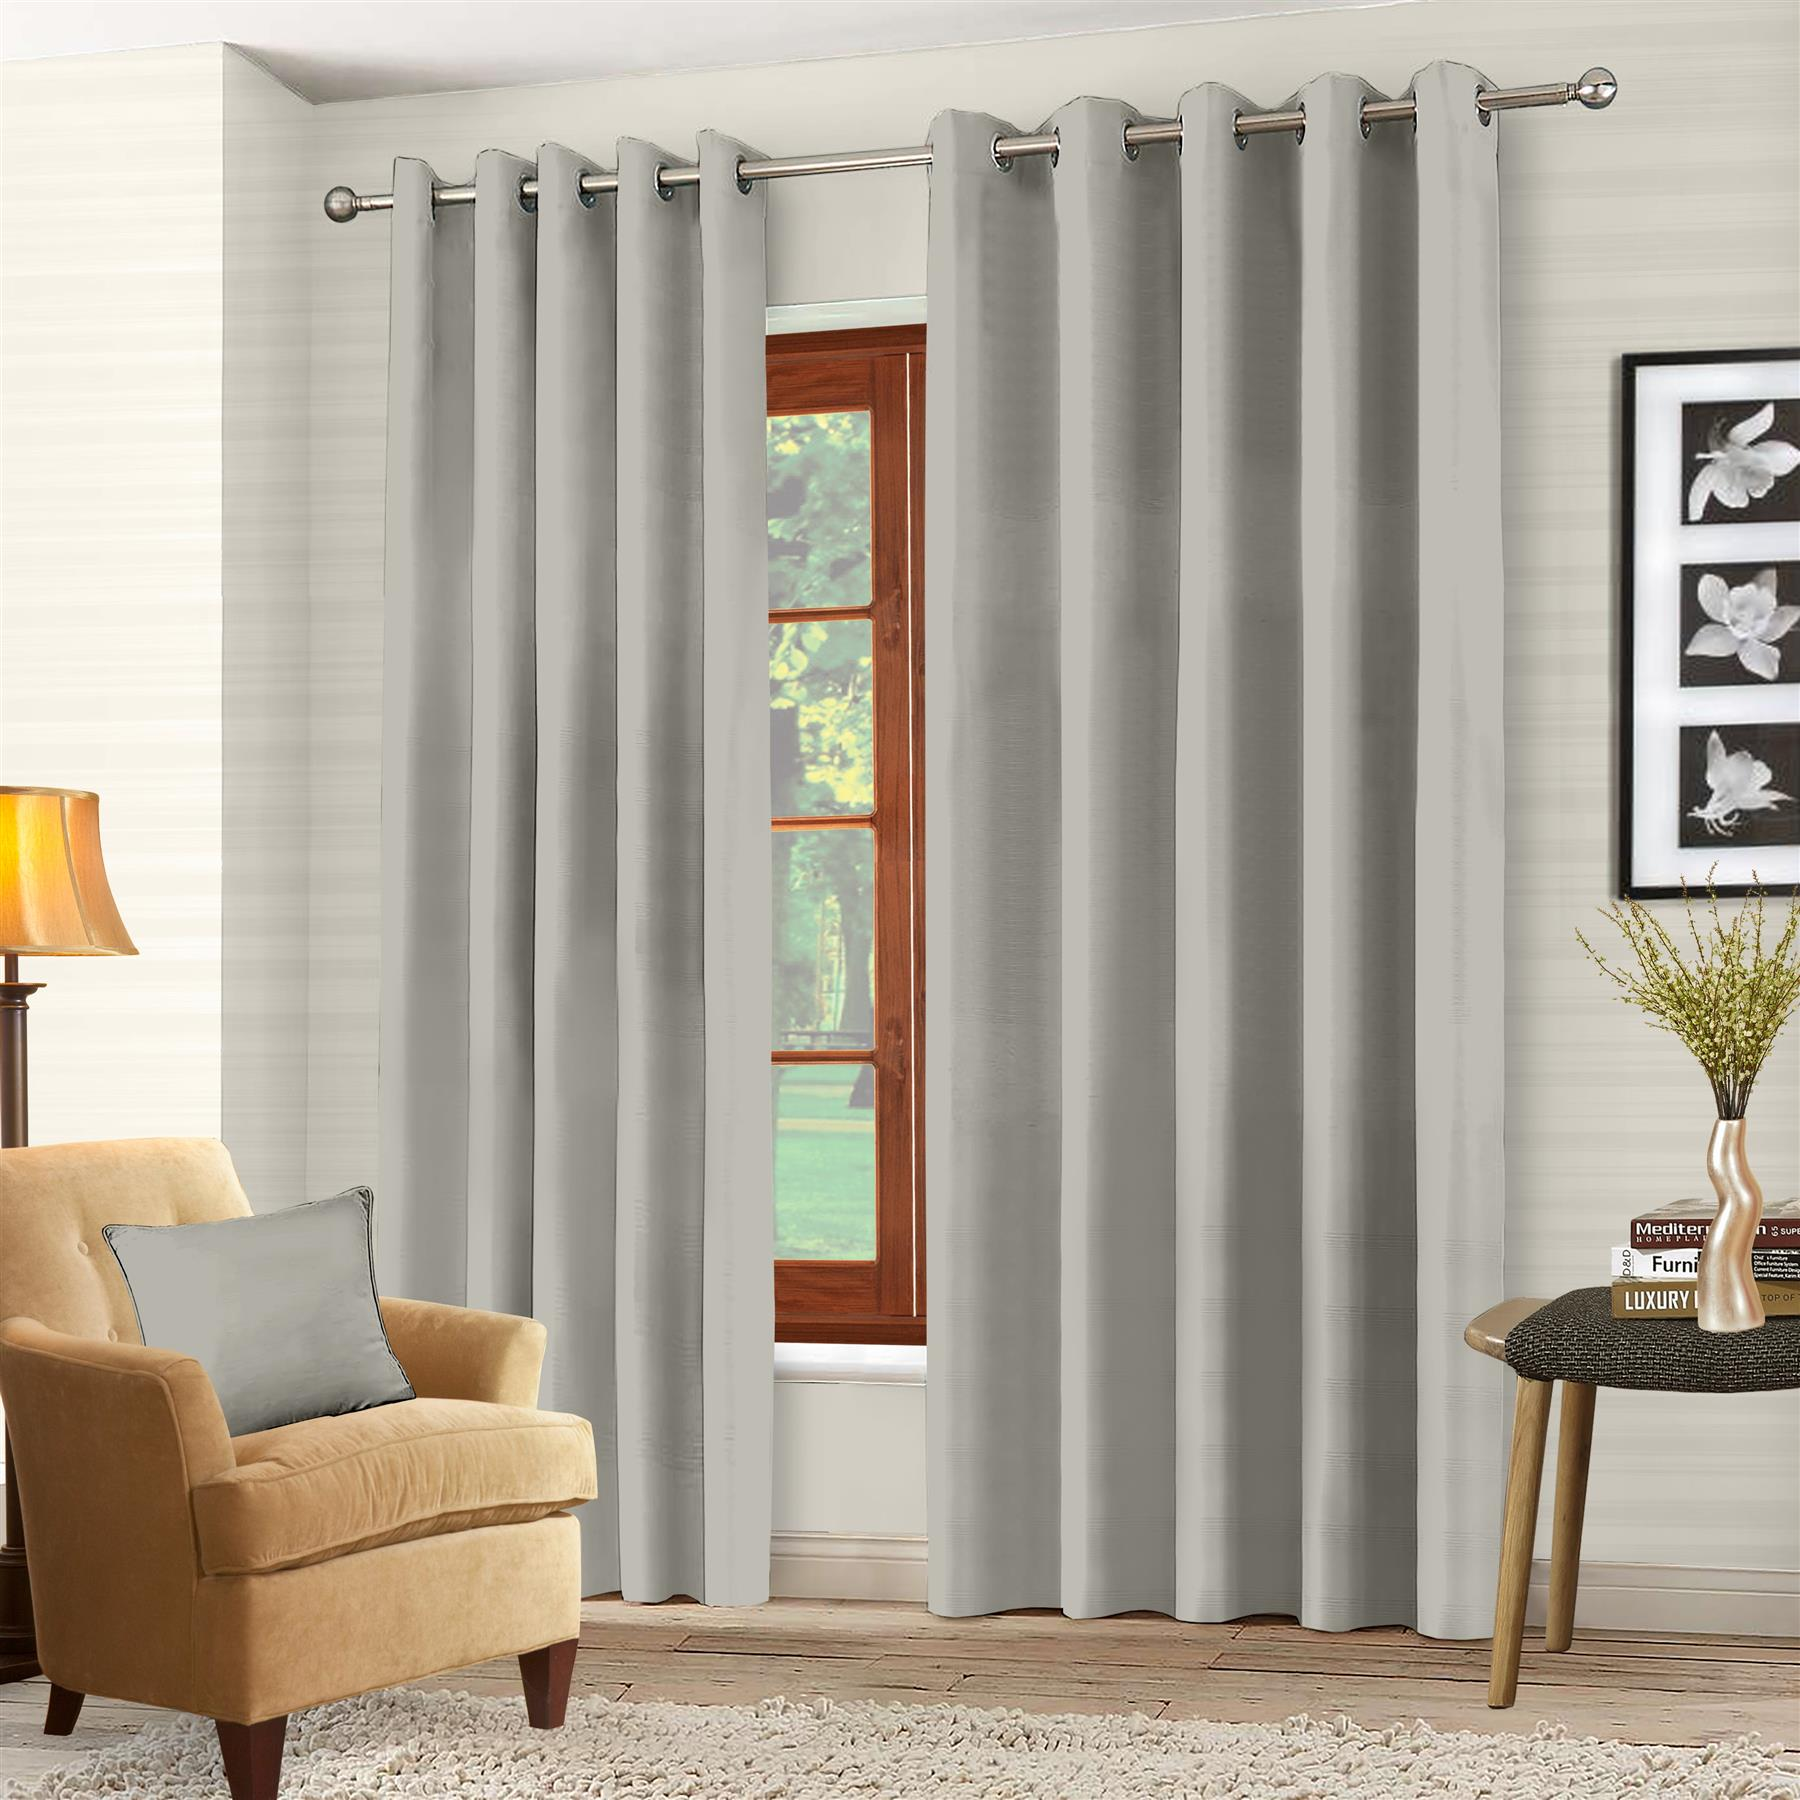 Luxury-Thermal-Blackout-Eyelet-Ring-Top-Curtains-Pair-with-tie-backs thumbnail 45